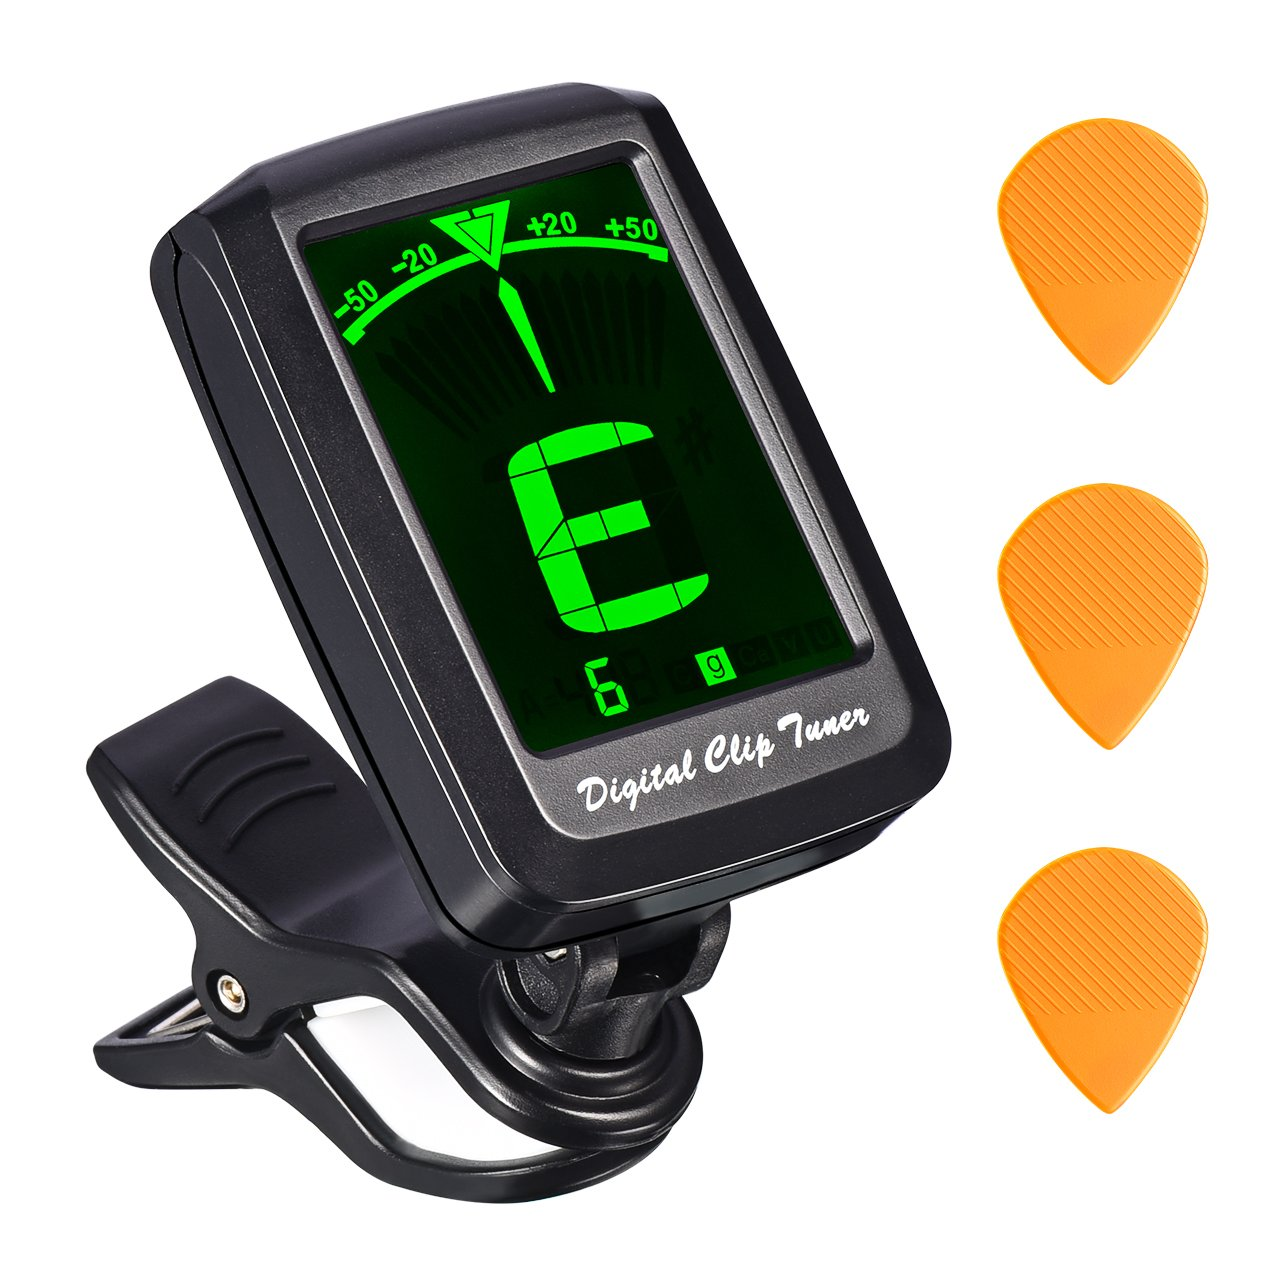 Guitar Tuner, TopElek Clip-on Tuner for All Instrument, Acoustic Guitar, Ukulele, Violin, Chromatic, Cavaquinho, 360 Degree Rotating, Auto Power-Off, Fast & Accurate Tuner with Battery & 3 Guitar Pick